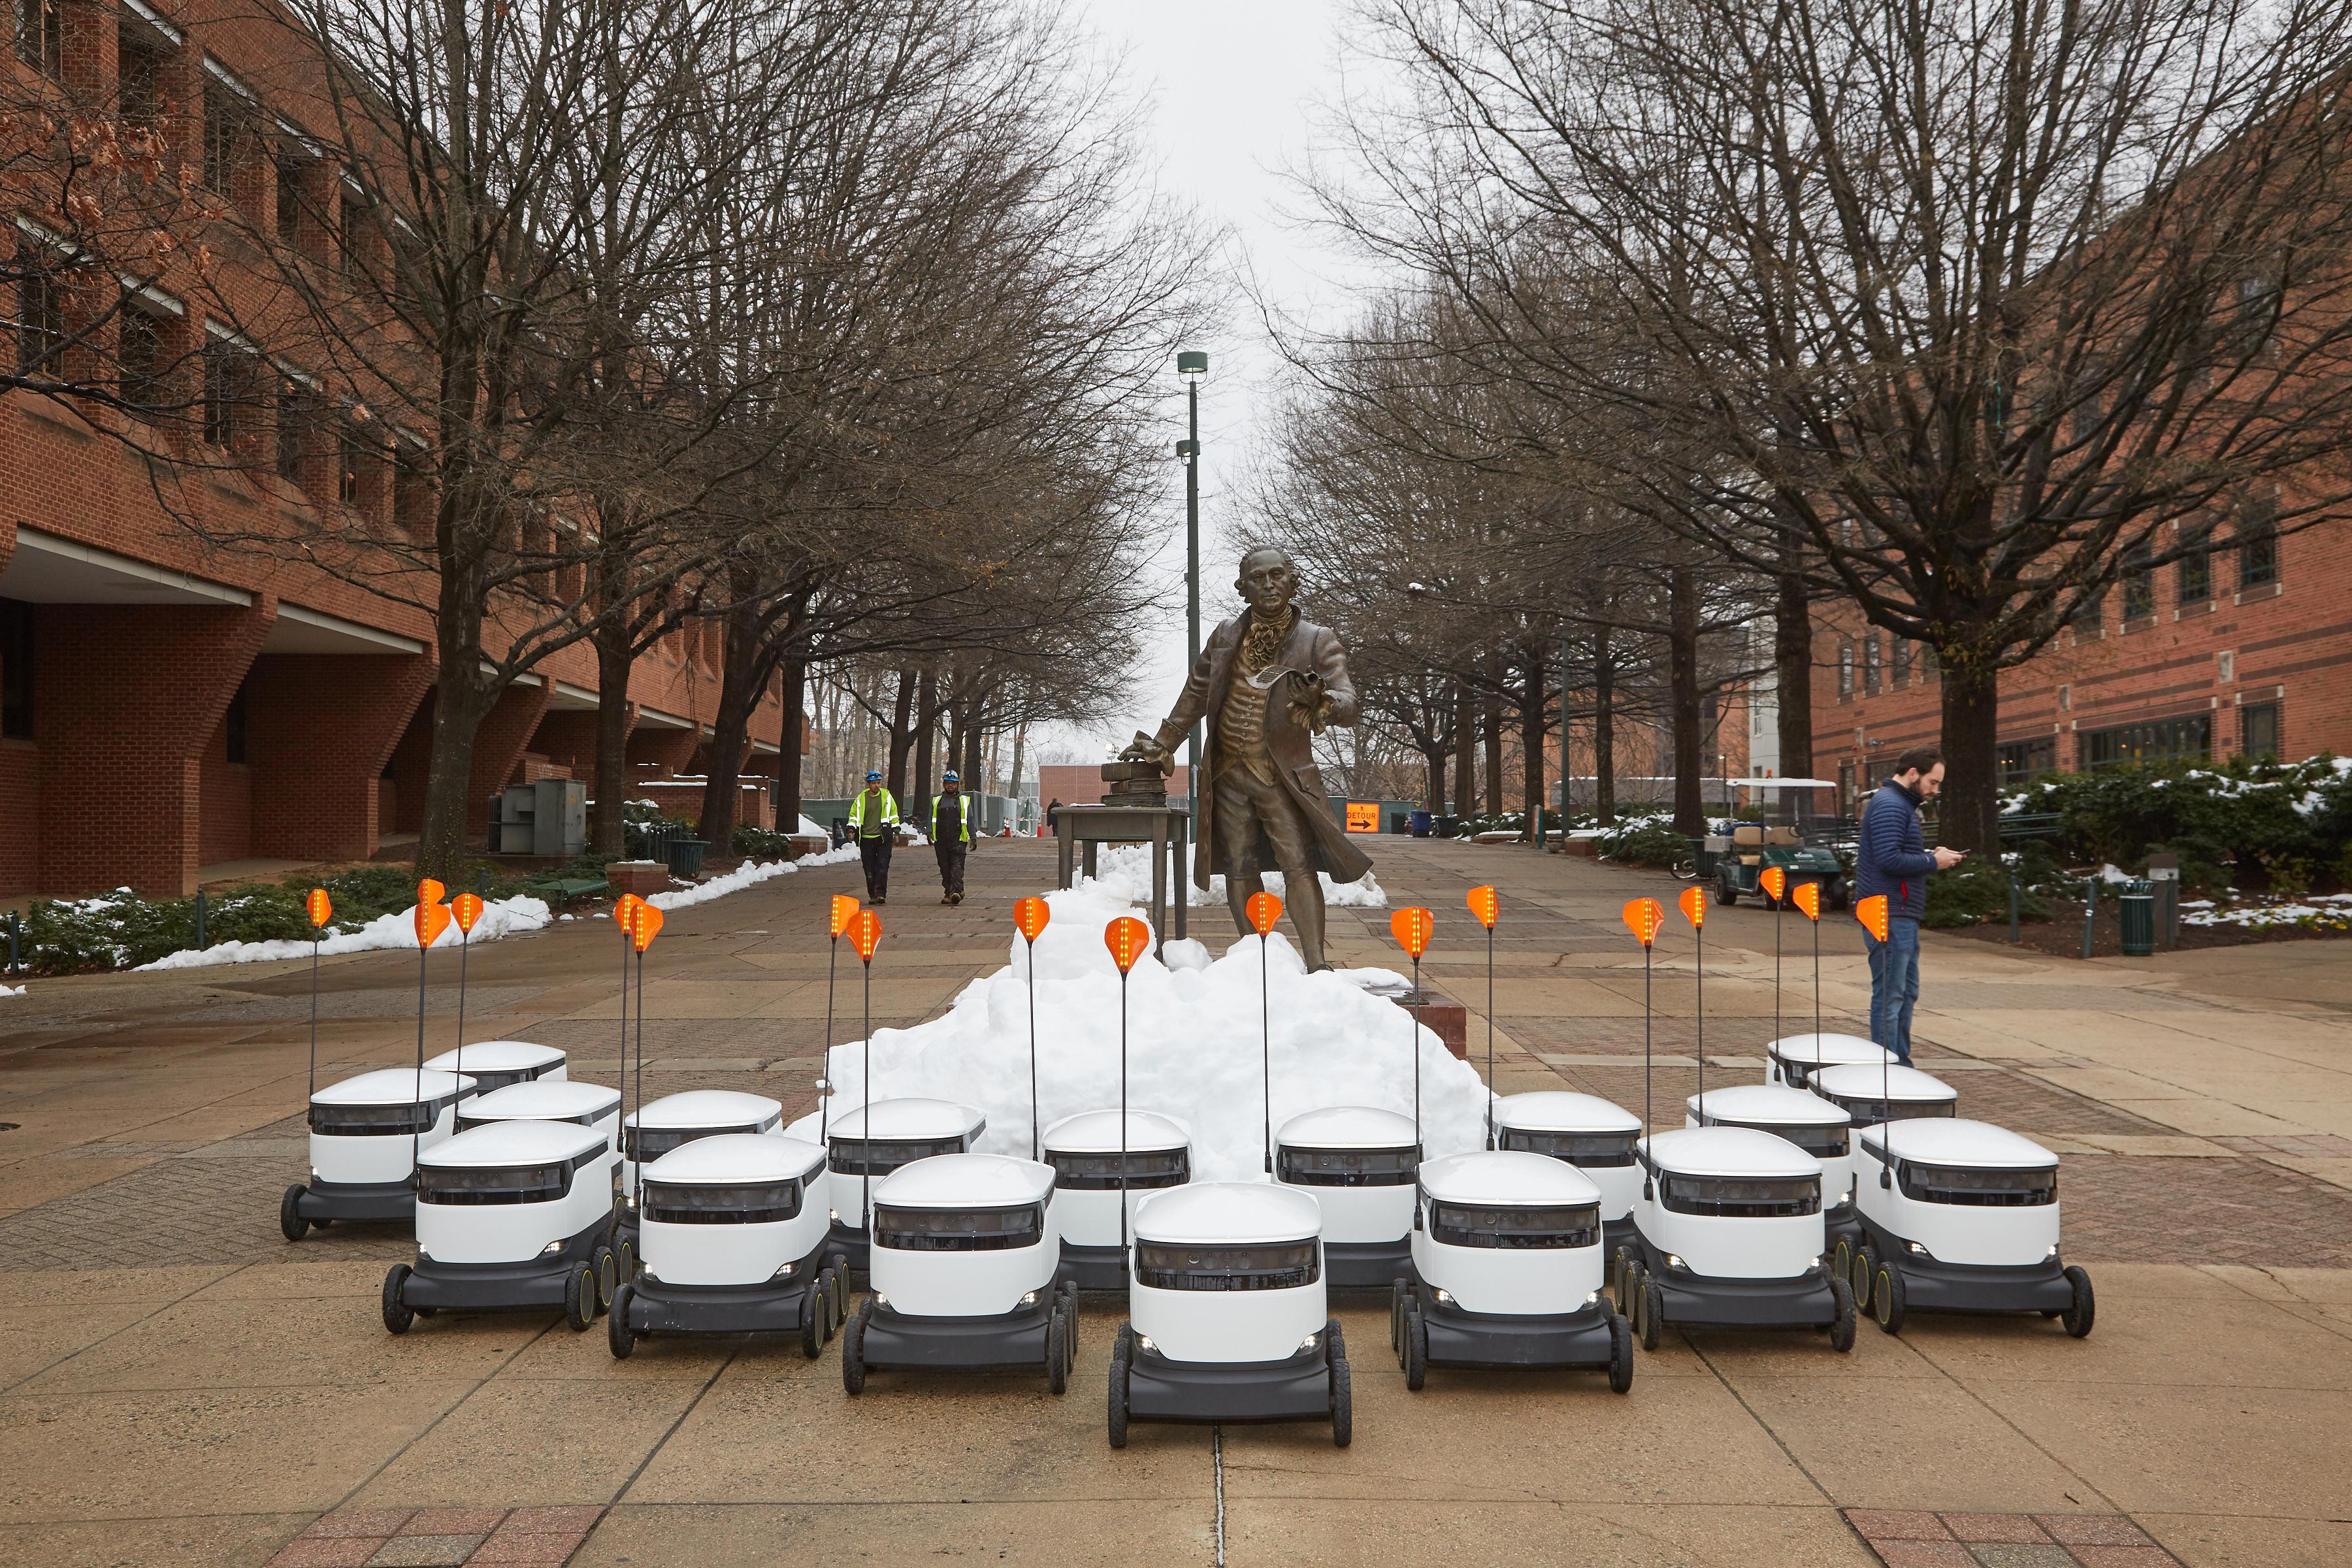 George mason university in fairfax virginia received 25 delivery robots that can haul up